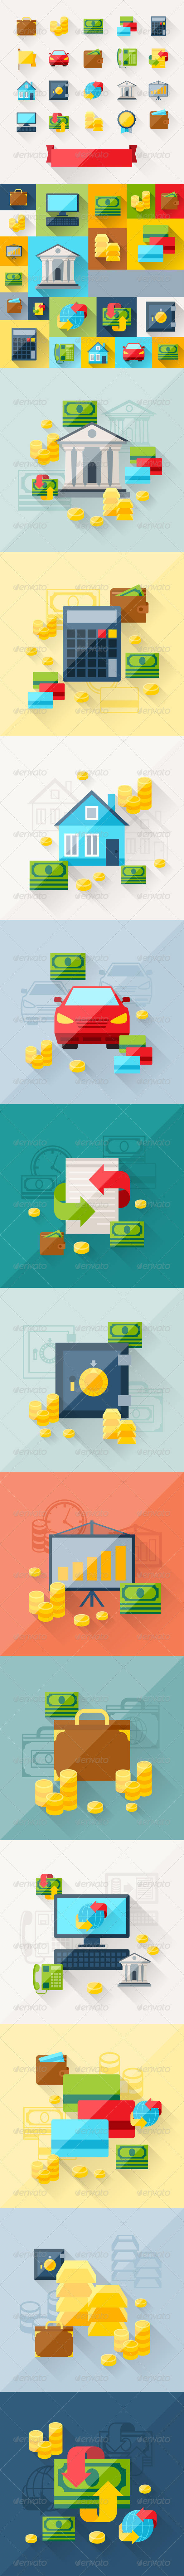 Backgrounds with Banking Icons in Flat Style - Concepts Business